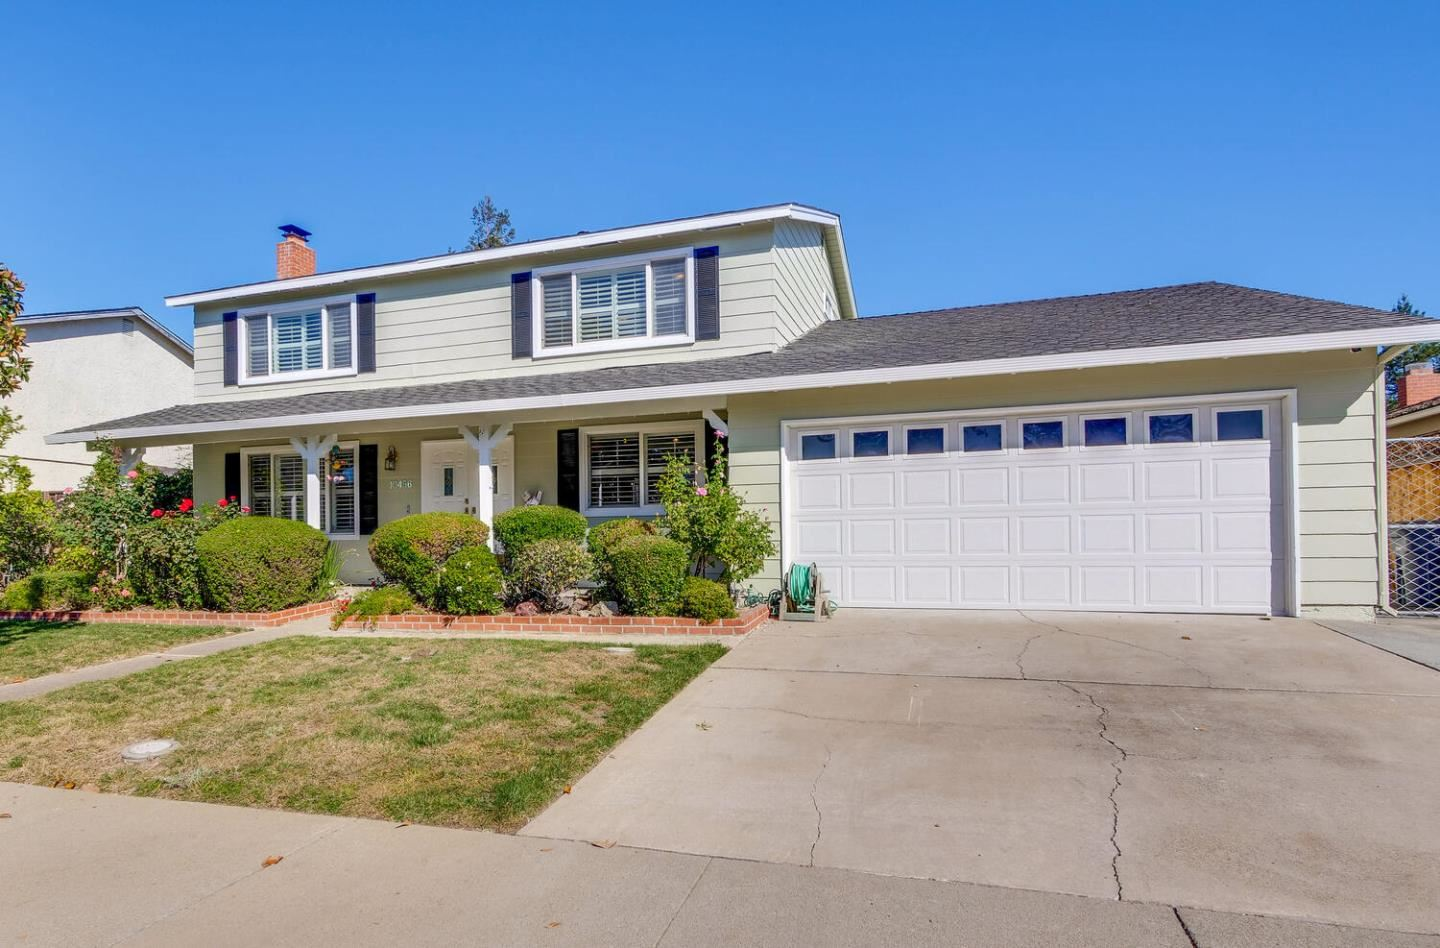 Photo for 10456 Stokes AVE, CUPERTINO, CA 95014 (MLS # ML81820542)